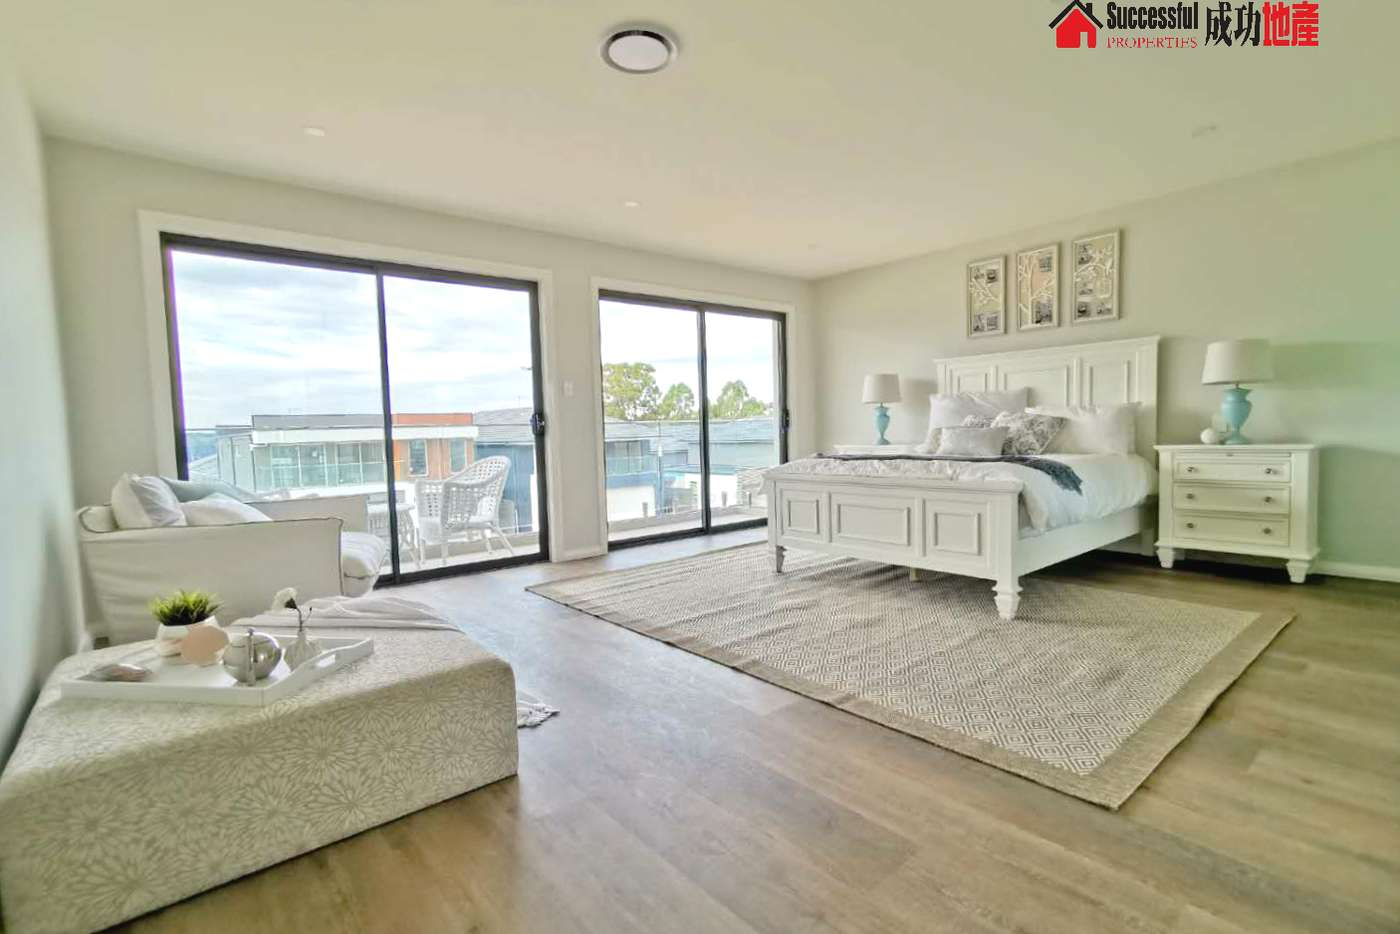 Sixth view of Homely house listing, LOT 86 Perfection Avenue, Stanhope Gardens NSW 2768